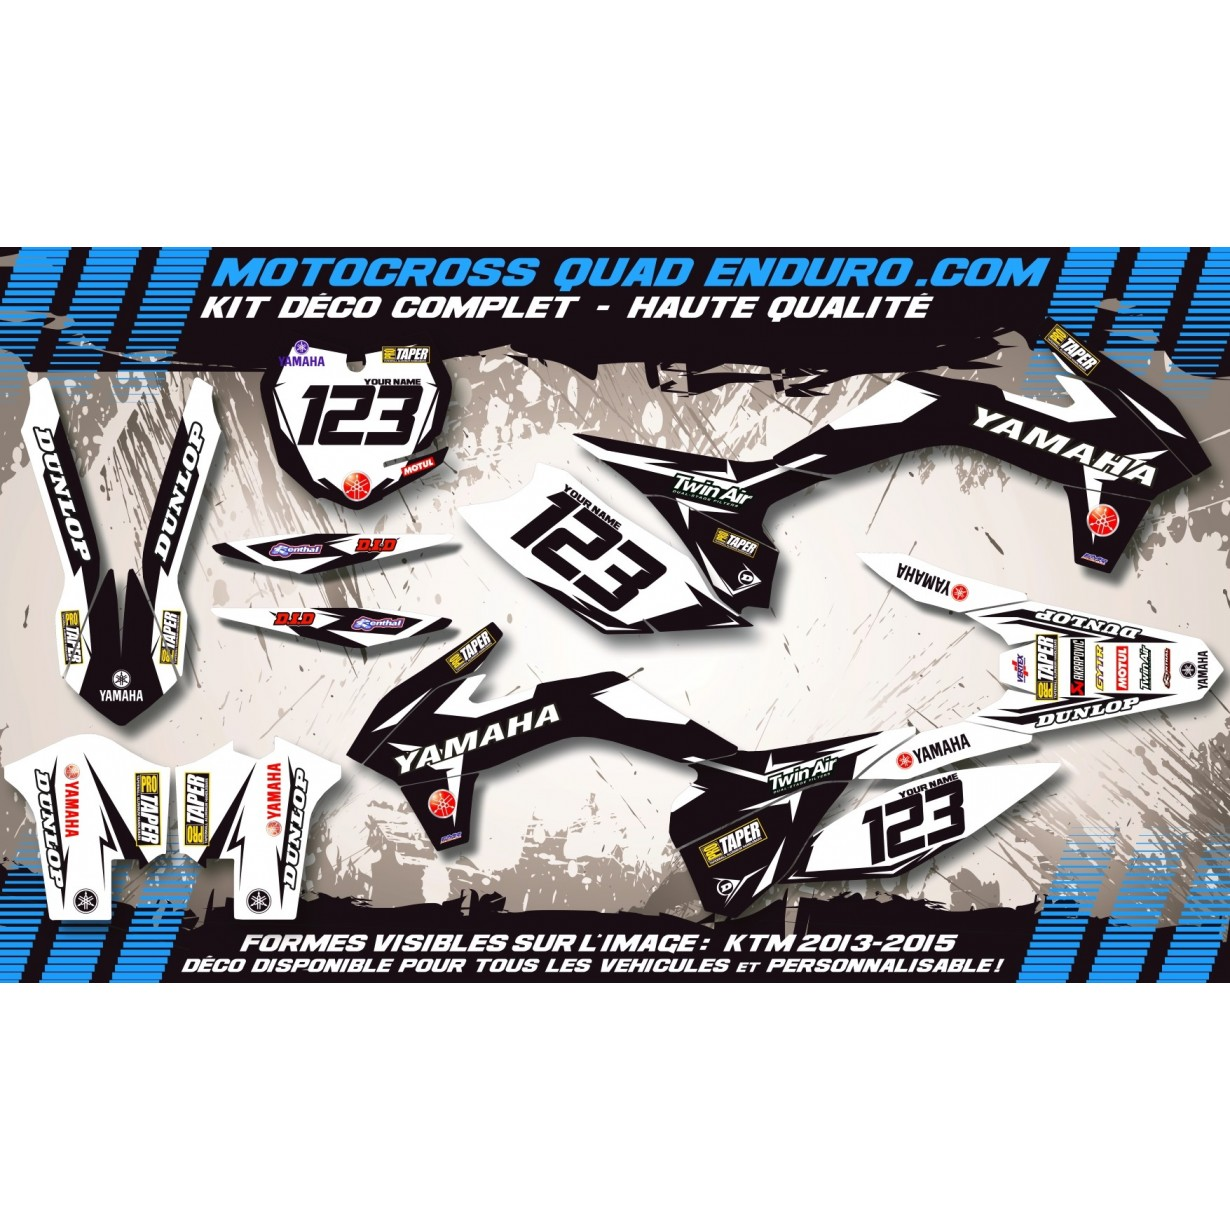 KIT DÉCO Perso 660 RAPTOR Quad Factory Black Edition MA10EB